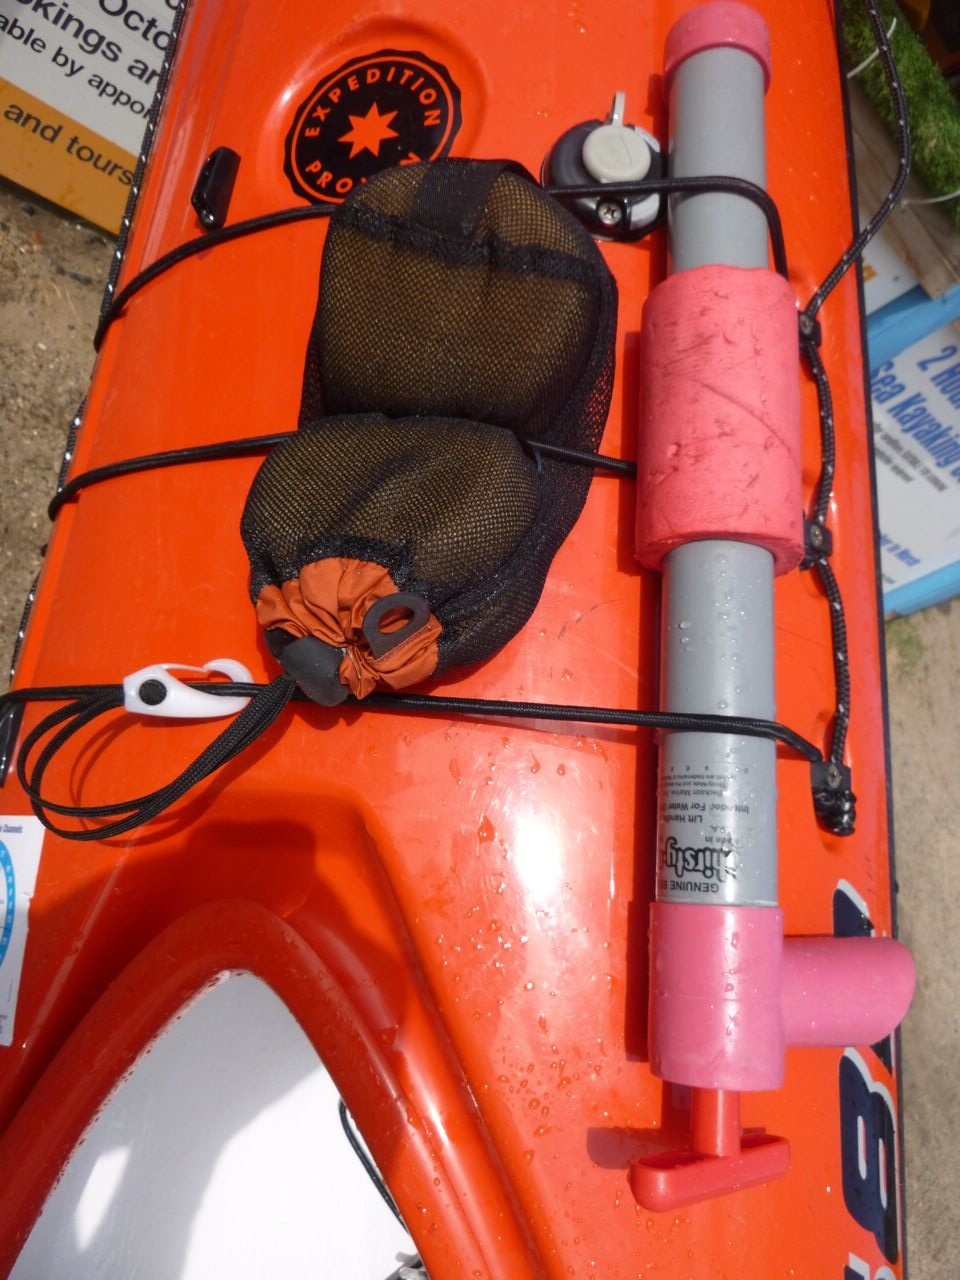 Carry a hand pump and sponge - make sure they are easily accessible from the cockpit